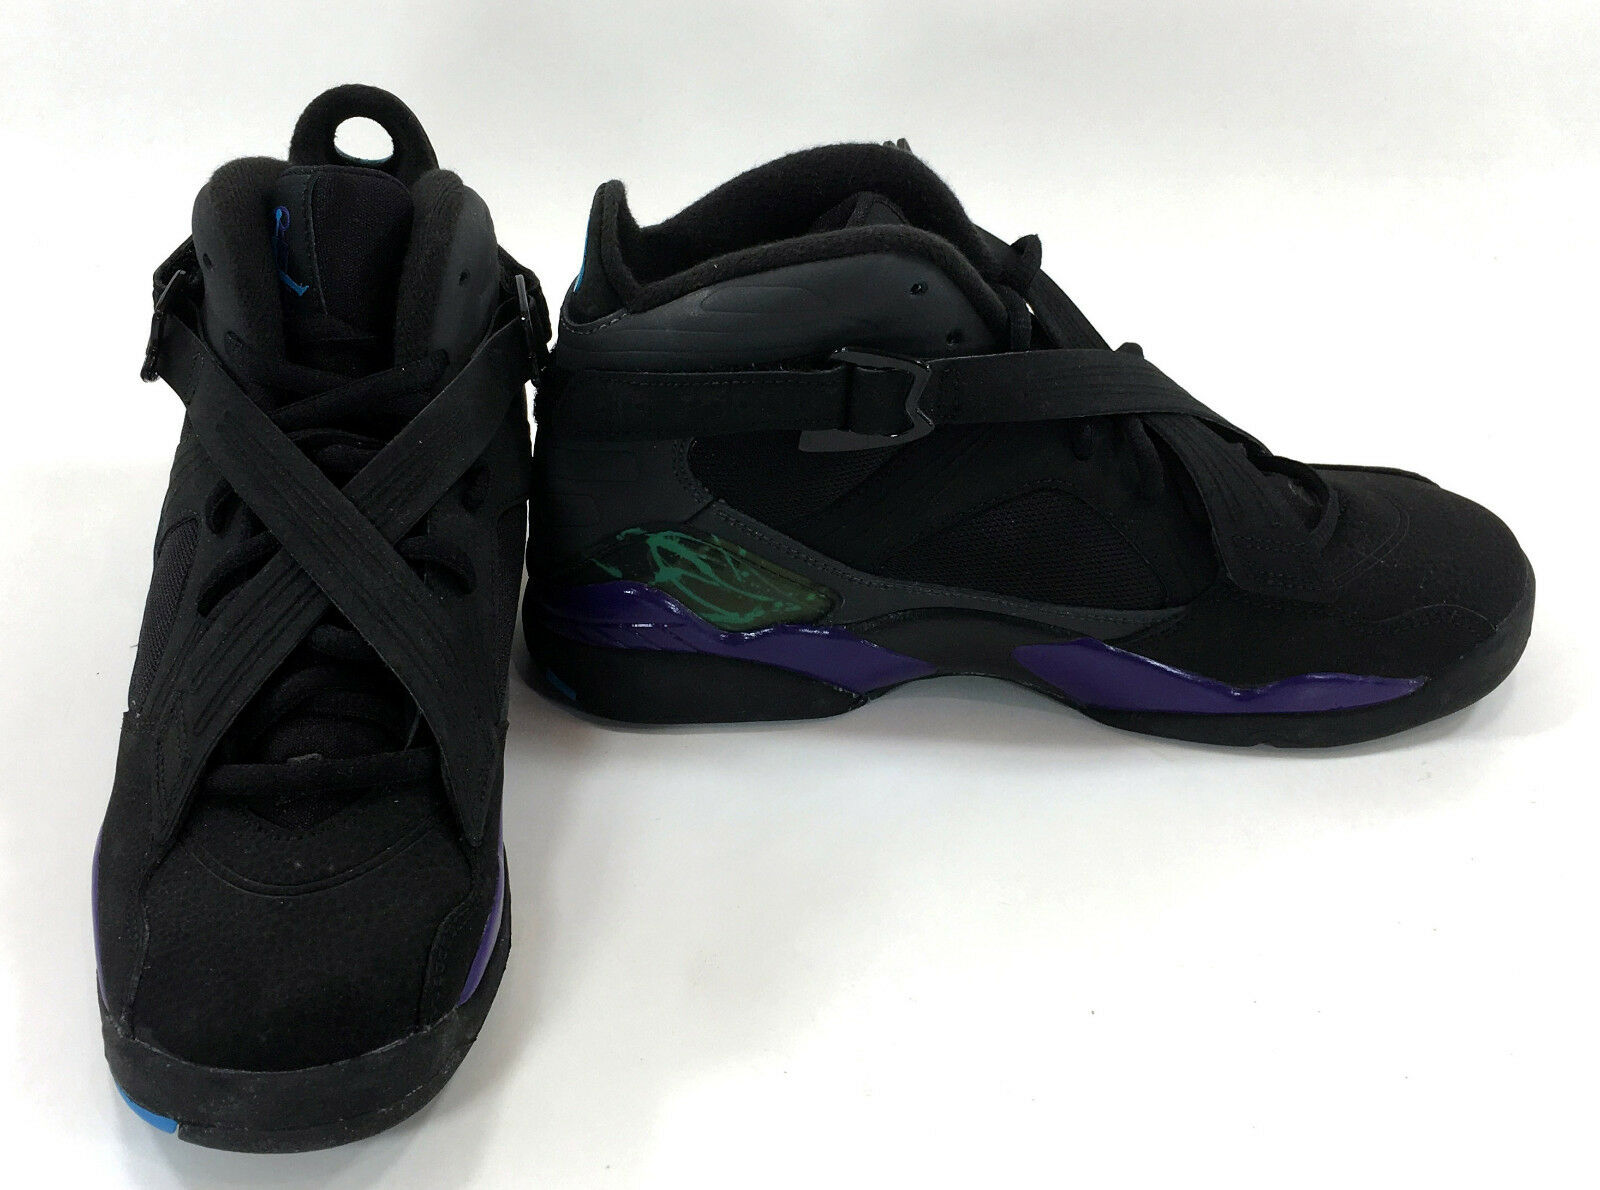 Nike shoes Air Jordan VIII 8 Black Aqua Anthracite Sneakers Mismatch 6 6.5